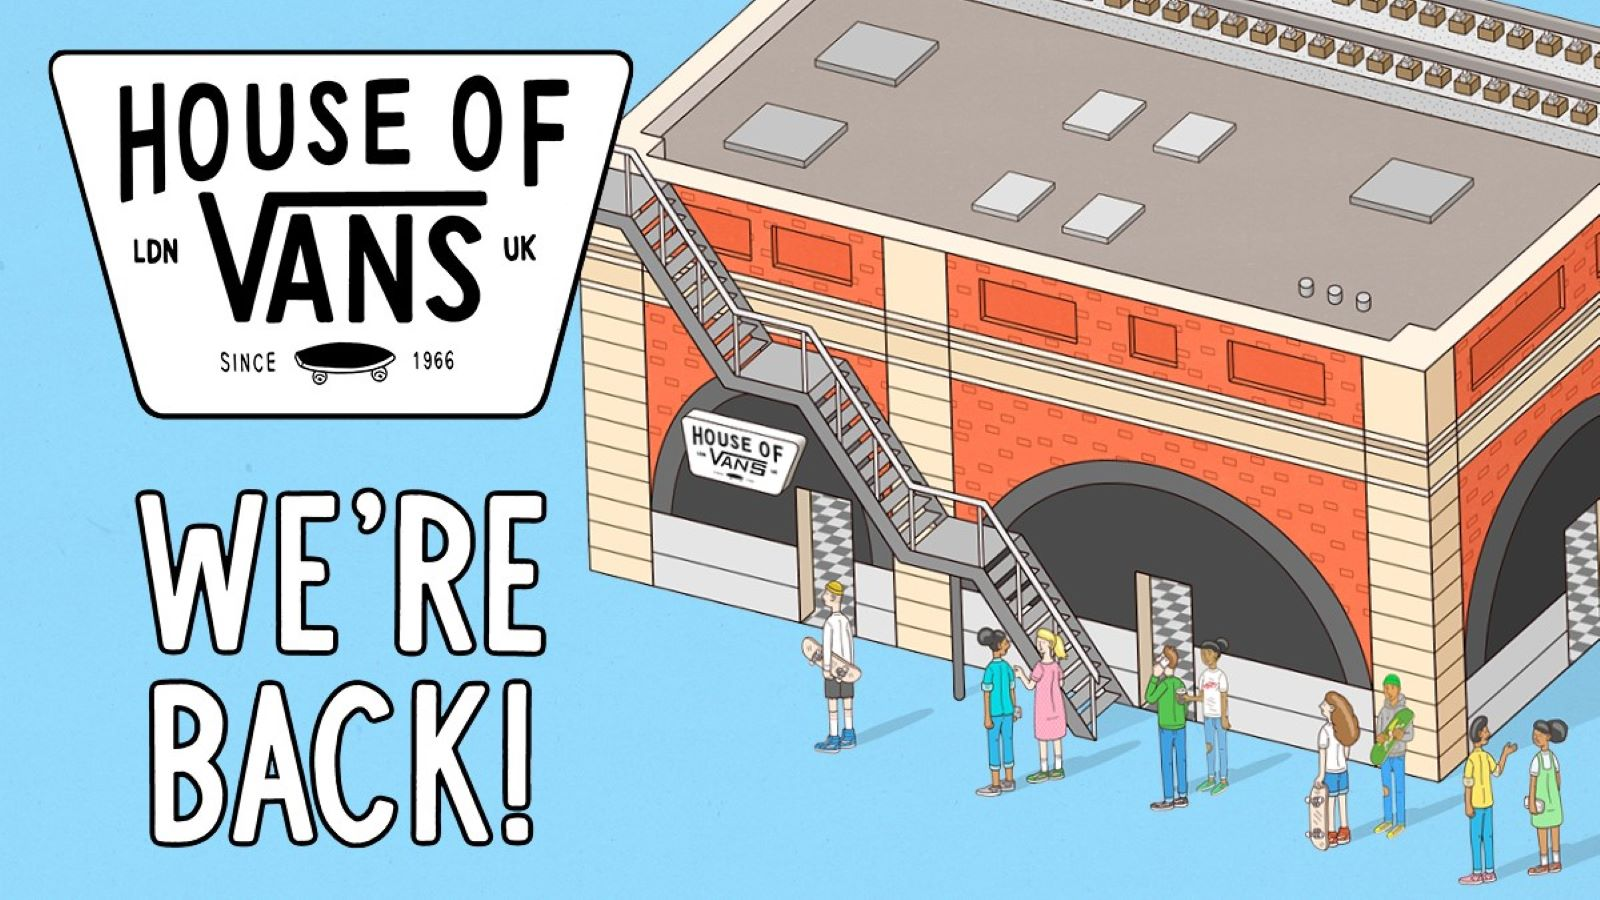 House of Vans reopening event